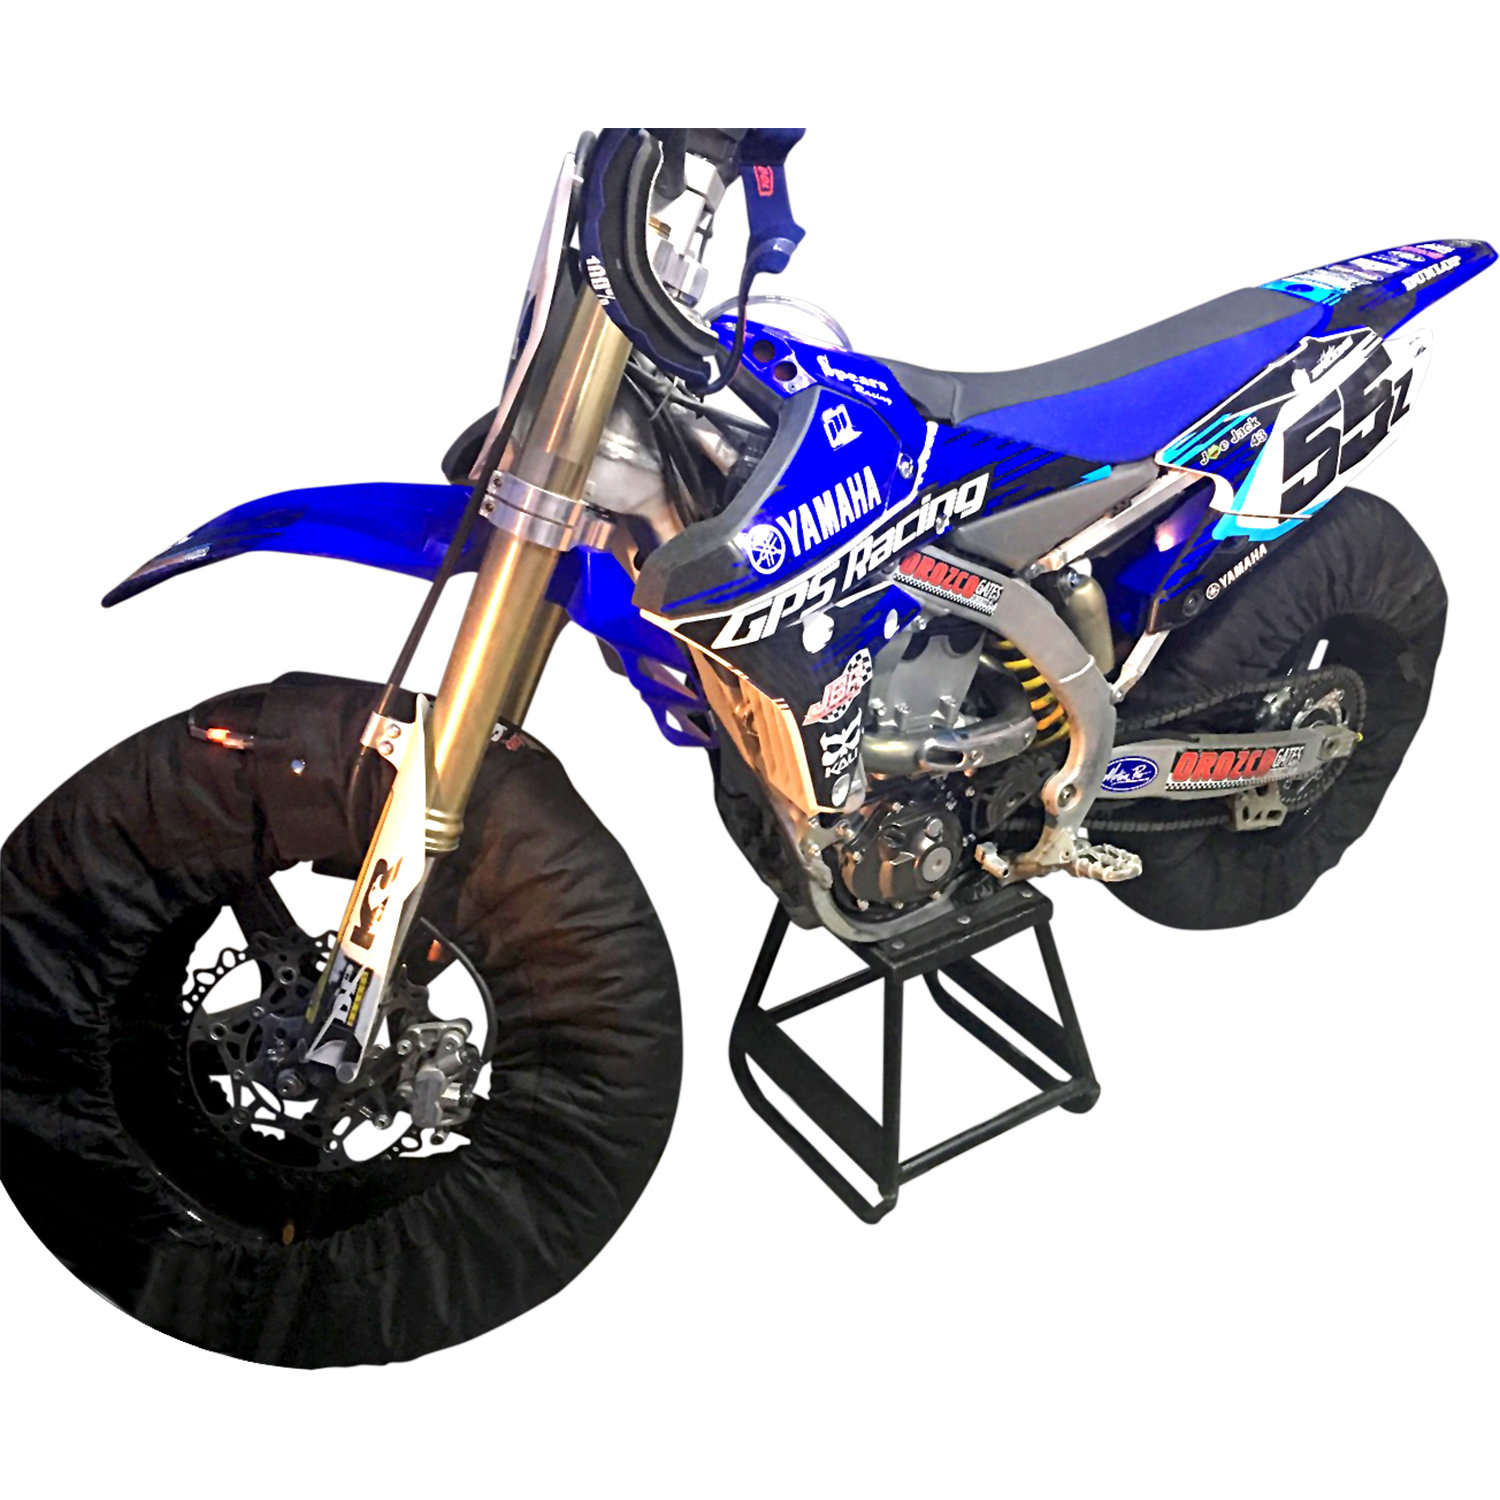 19 Inch Flat Track, 2019 Series 3 Temp Tire Warmers - 19 Inch Front and Rear Wheels 00507